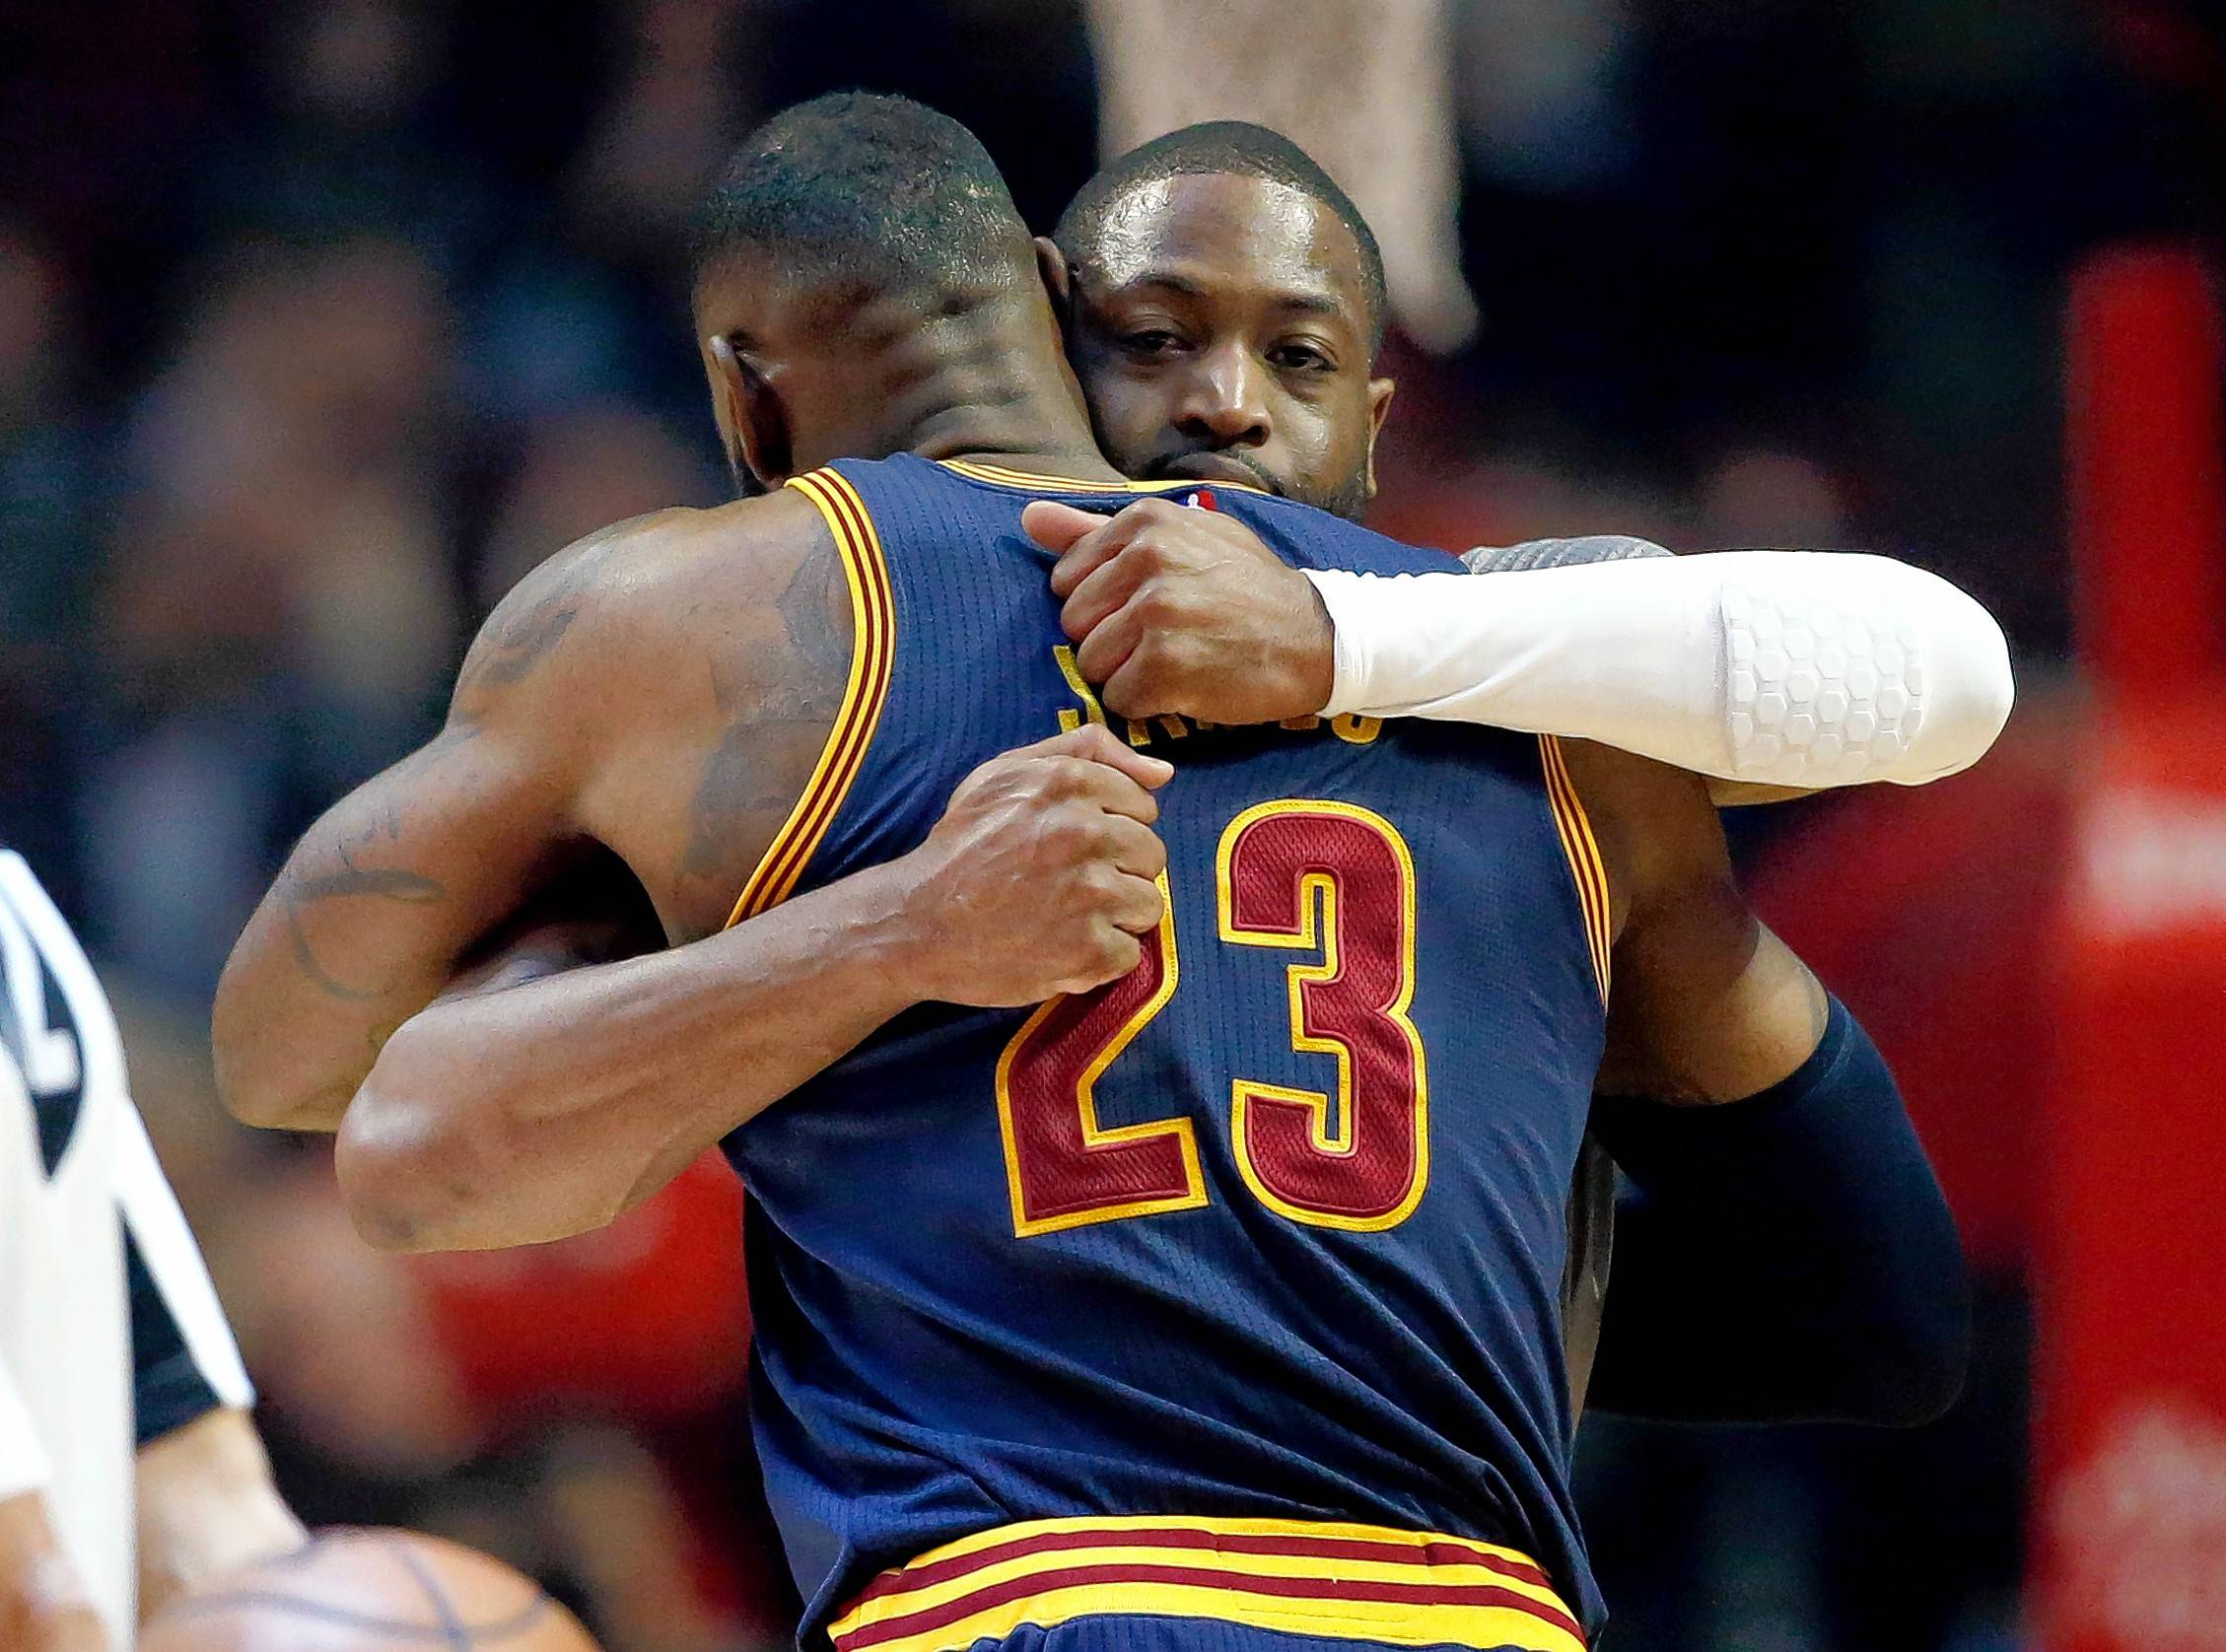 Bulls' Wade jumps into LeBron's feud with Barkley